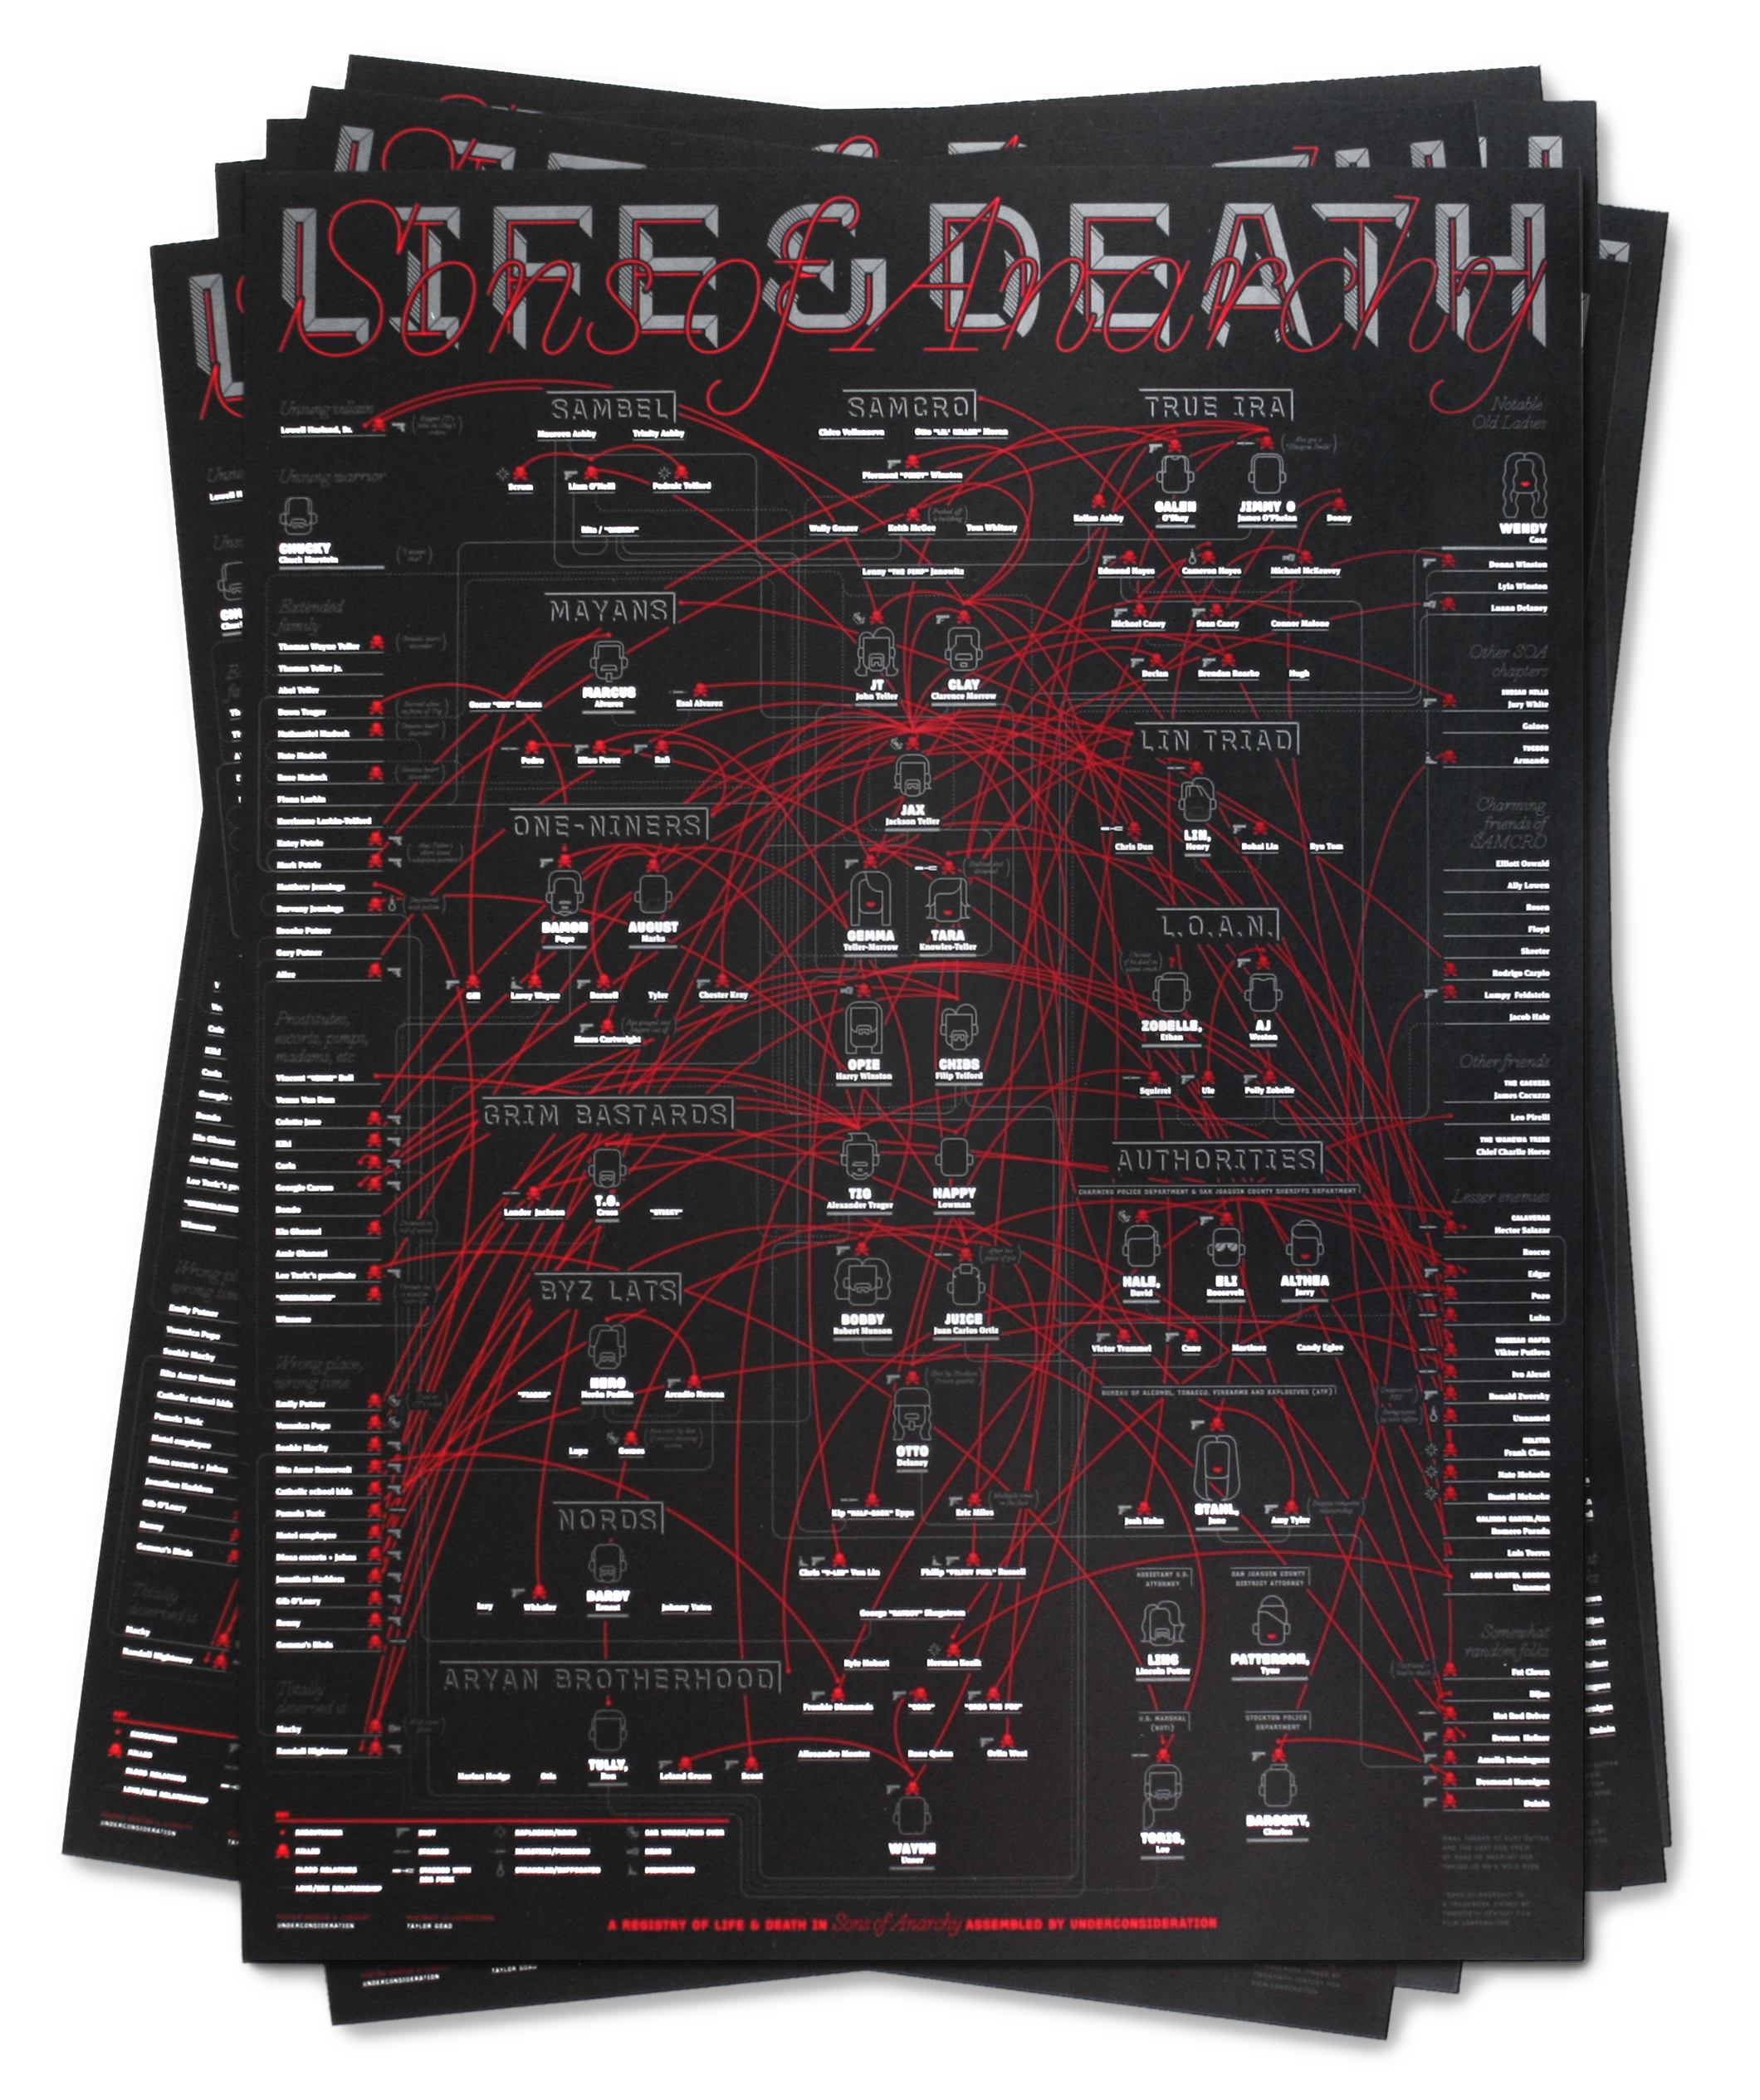 A Graphic Registry of Life & Death in Sons of Anarchy